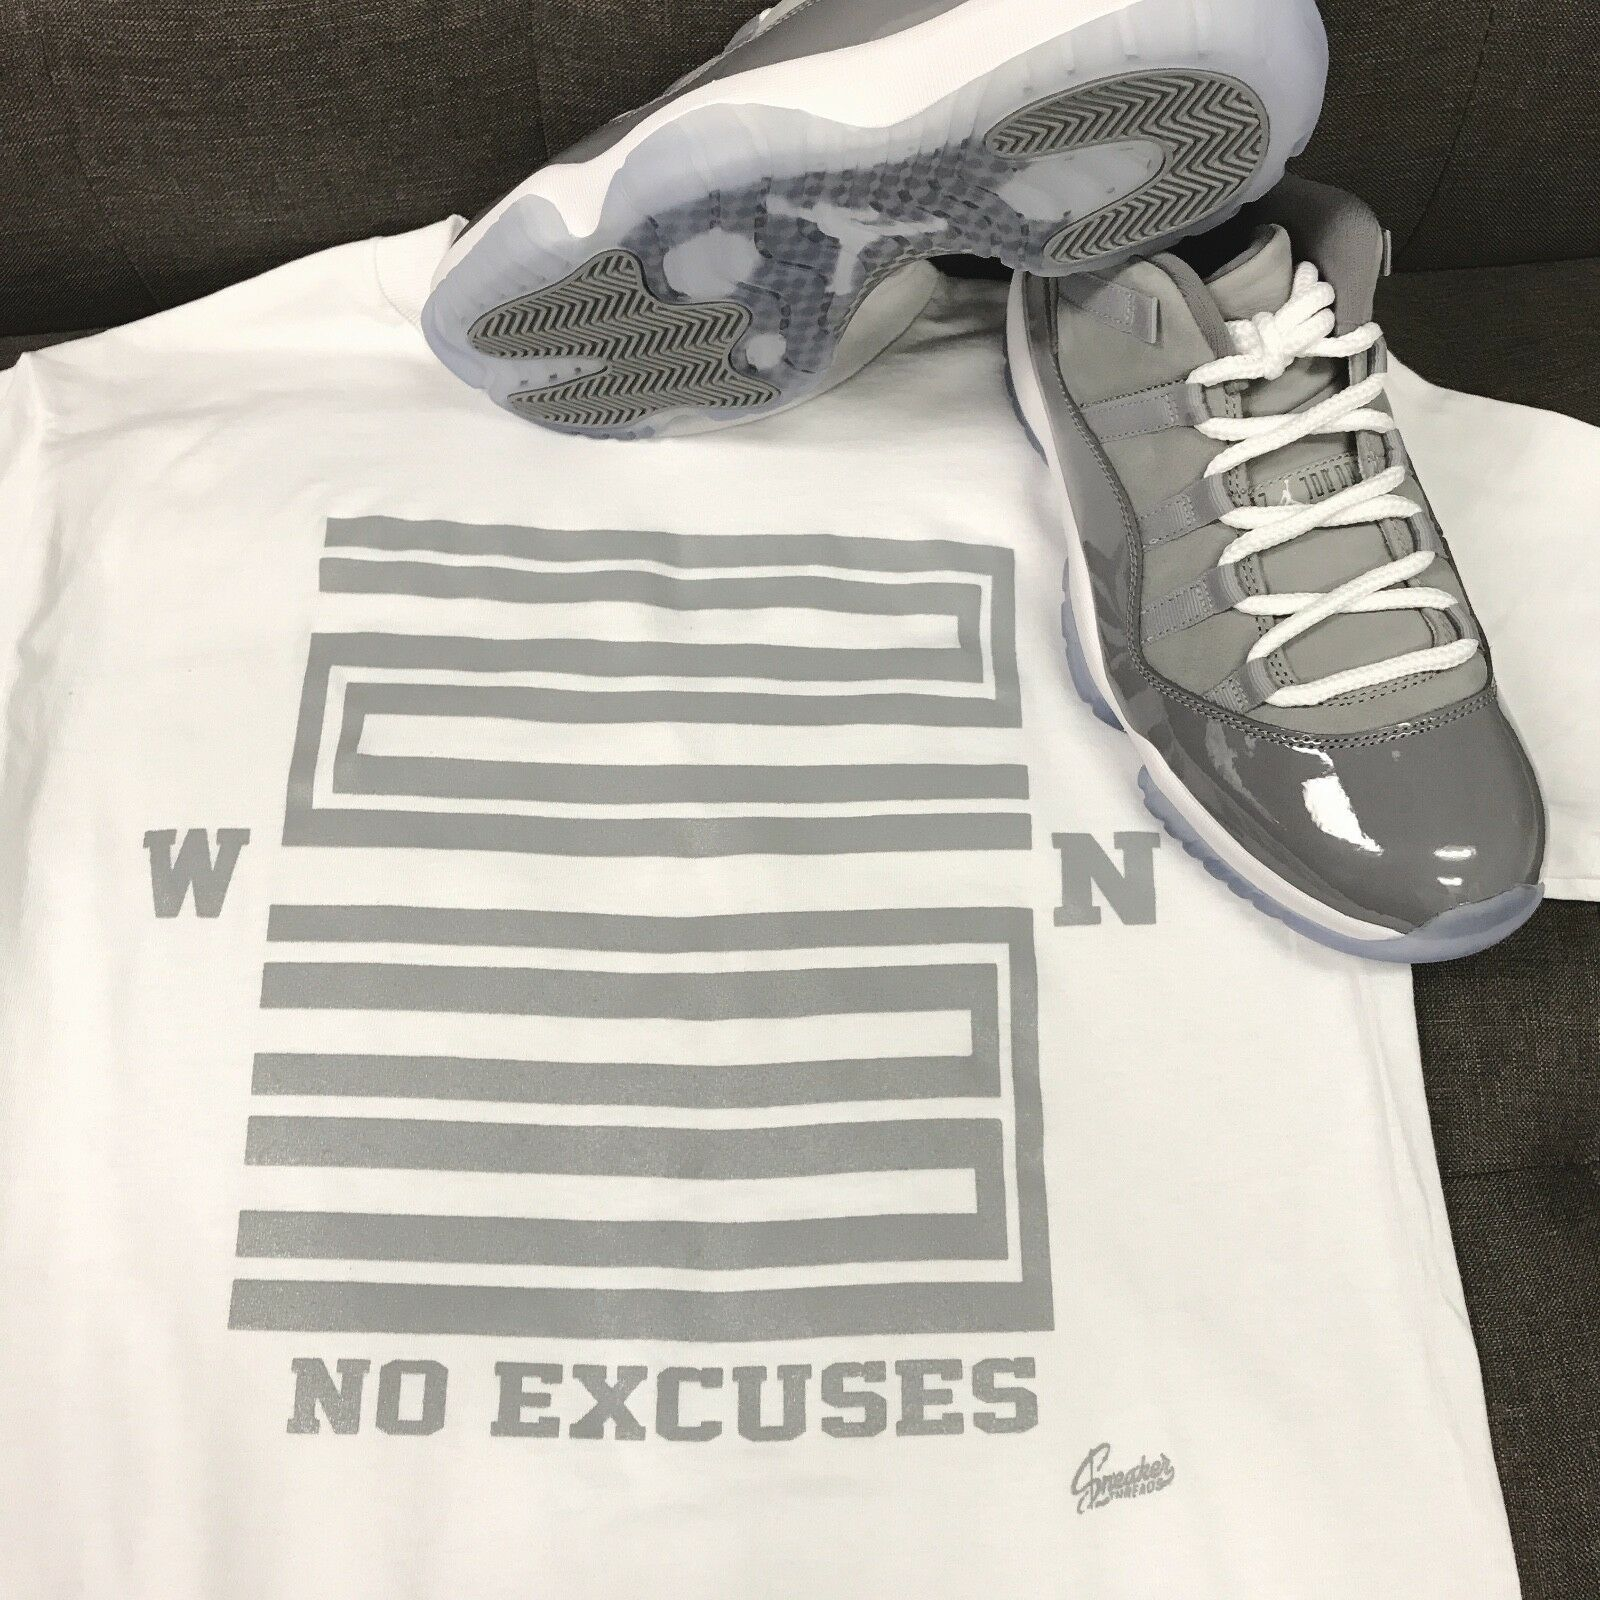 2aa19192c0b59b Shirt Jordan 11 Low Grey - Win 23 Tee Match Cool nwpzwr17362-T ...